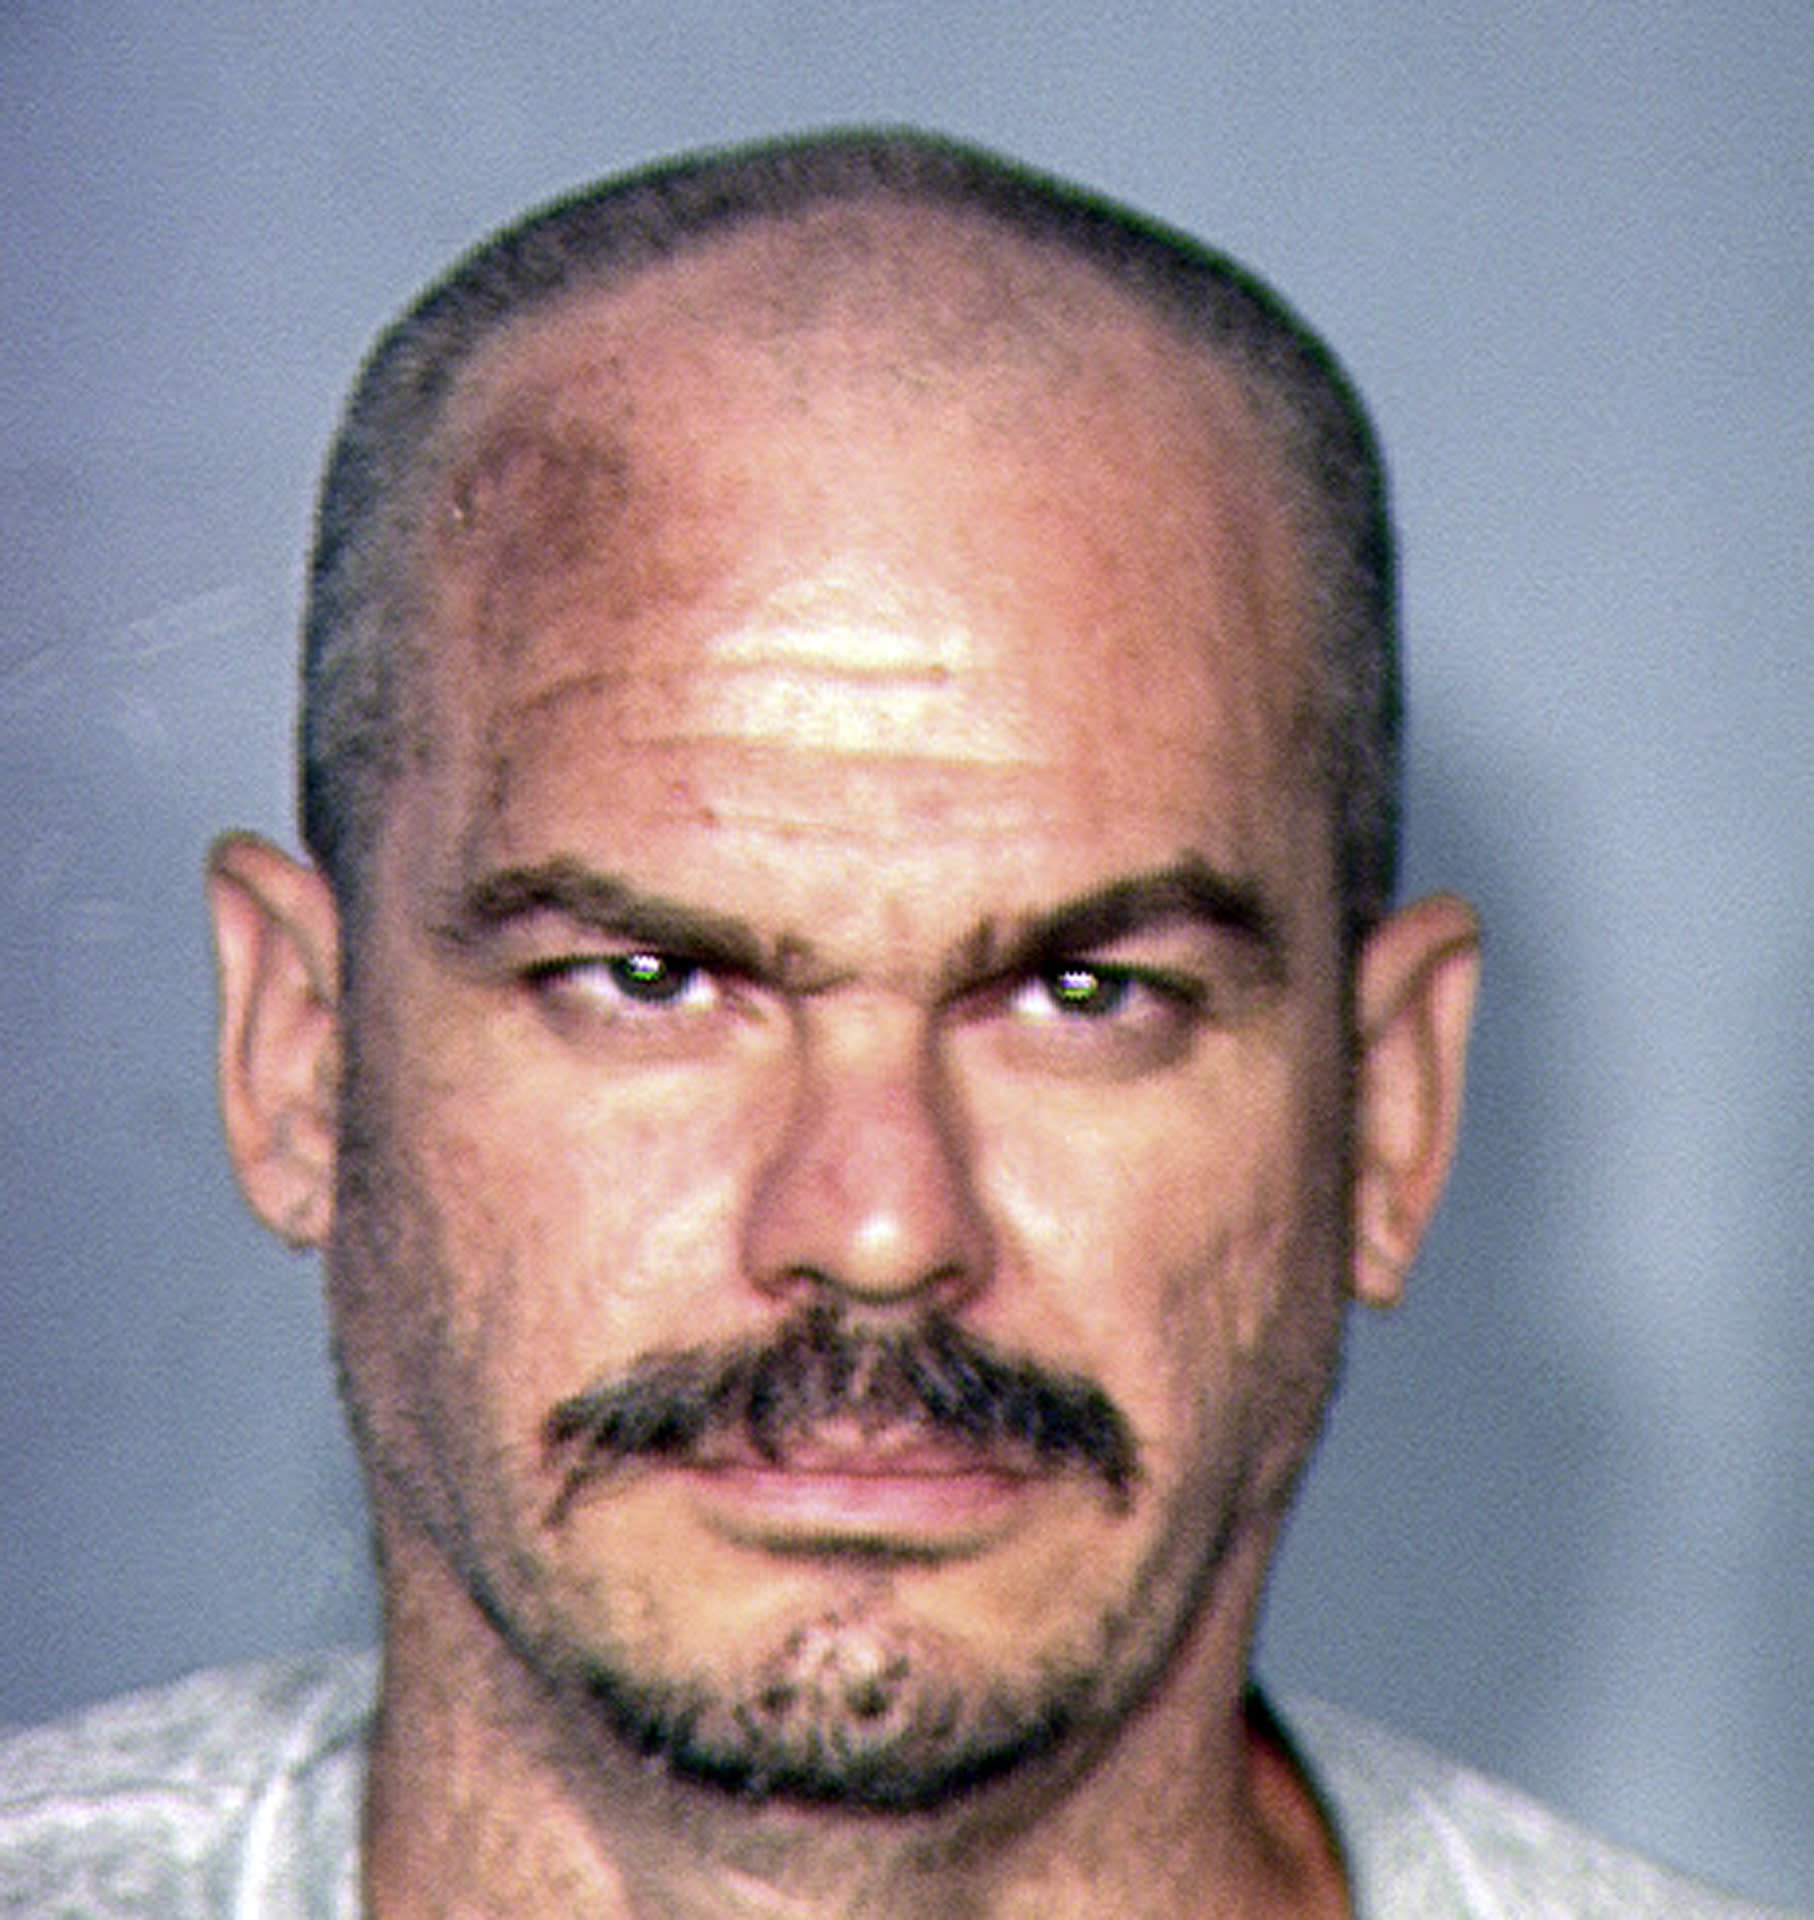 "This image provided by the Las Vegas Metropolitan Police Department shows David Allen Brutsche, 42, who was arrested on domestic terrorism charges in Las Vegas. A four-month undercover operation in Las Vegas led to the arrests of Brutsche and Devon Campbell Newman. The arrests stopped a plot to abduct, torture and kill police officers in an effort to bring attention the ""sovereign citizen"" movement, authorities said Thursday, Aug. 22, 2013. (AP Photo/Las Vegas Metropolitan Police Department)"